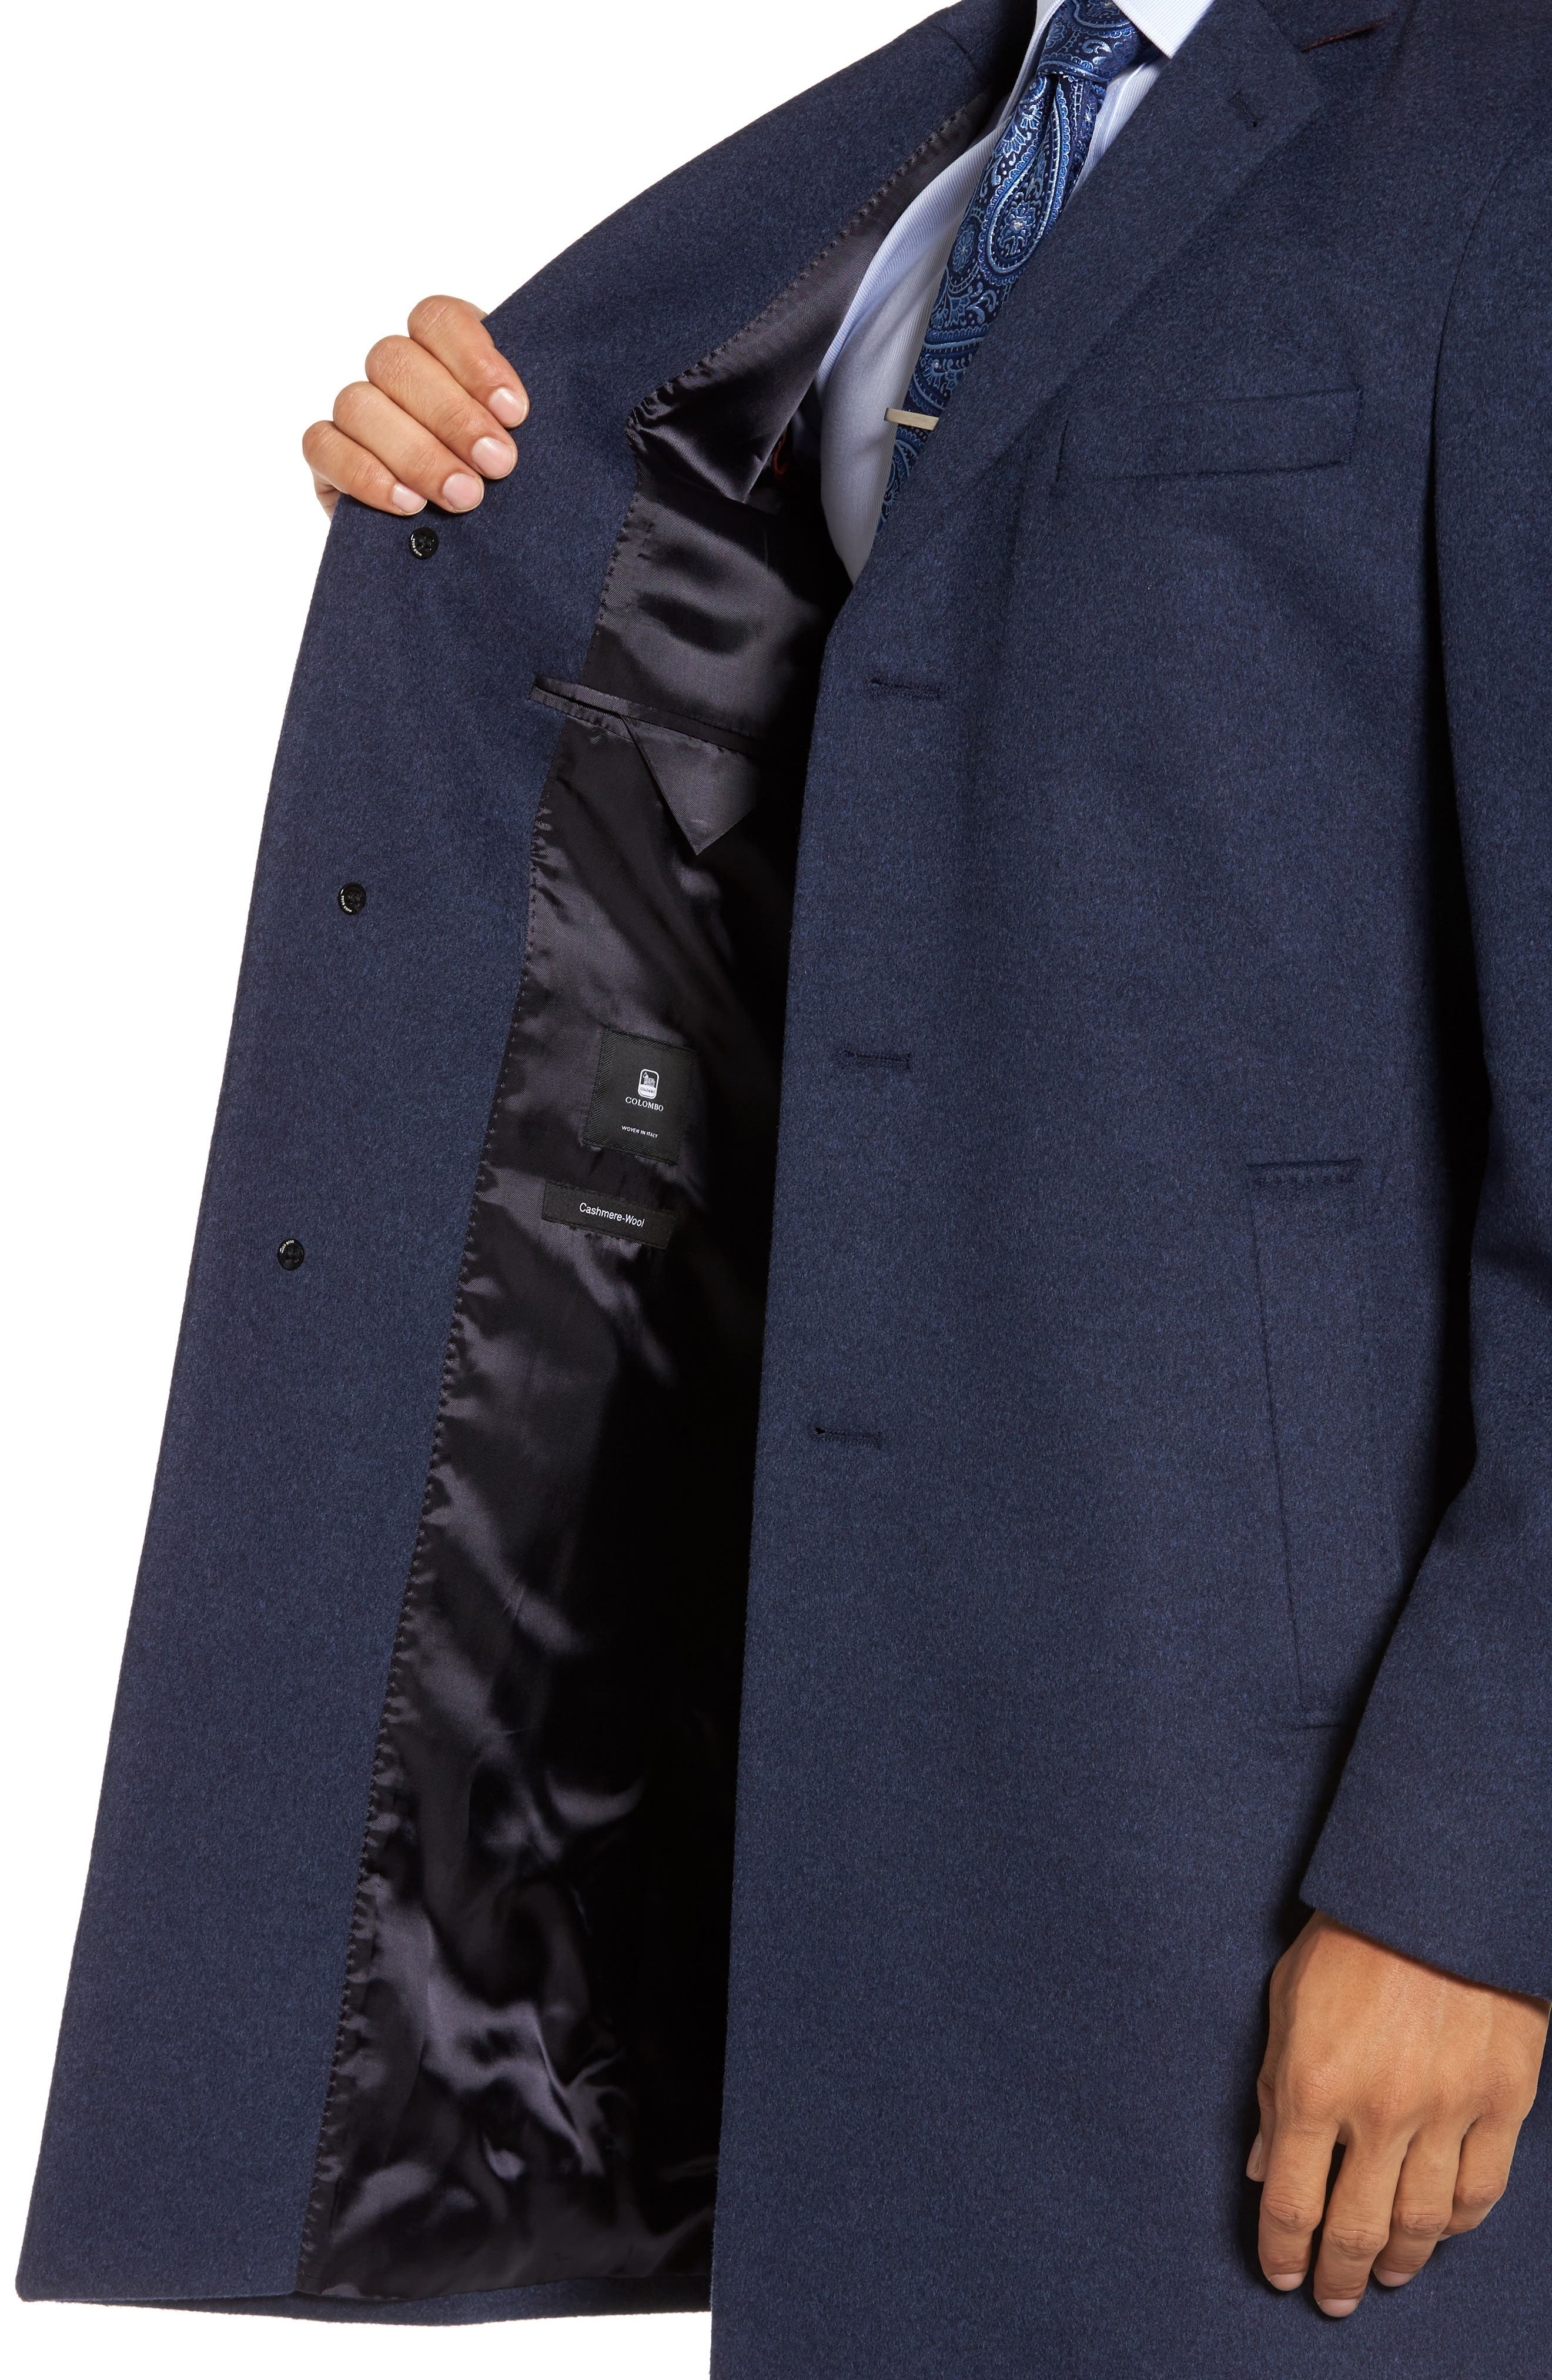 Nye Wool & Cashmere Topcoat,                             Alternate thumbnail 3, color,